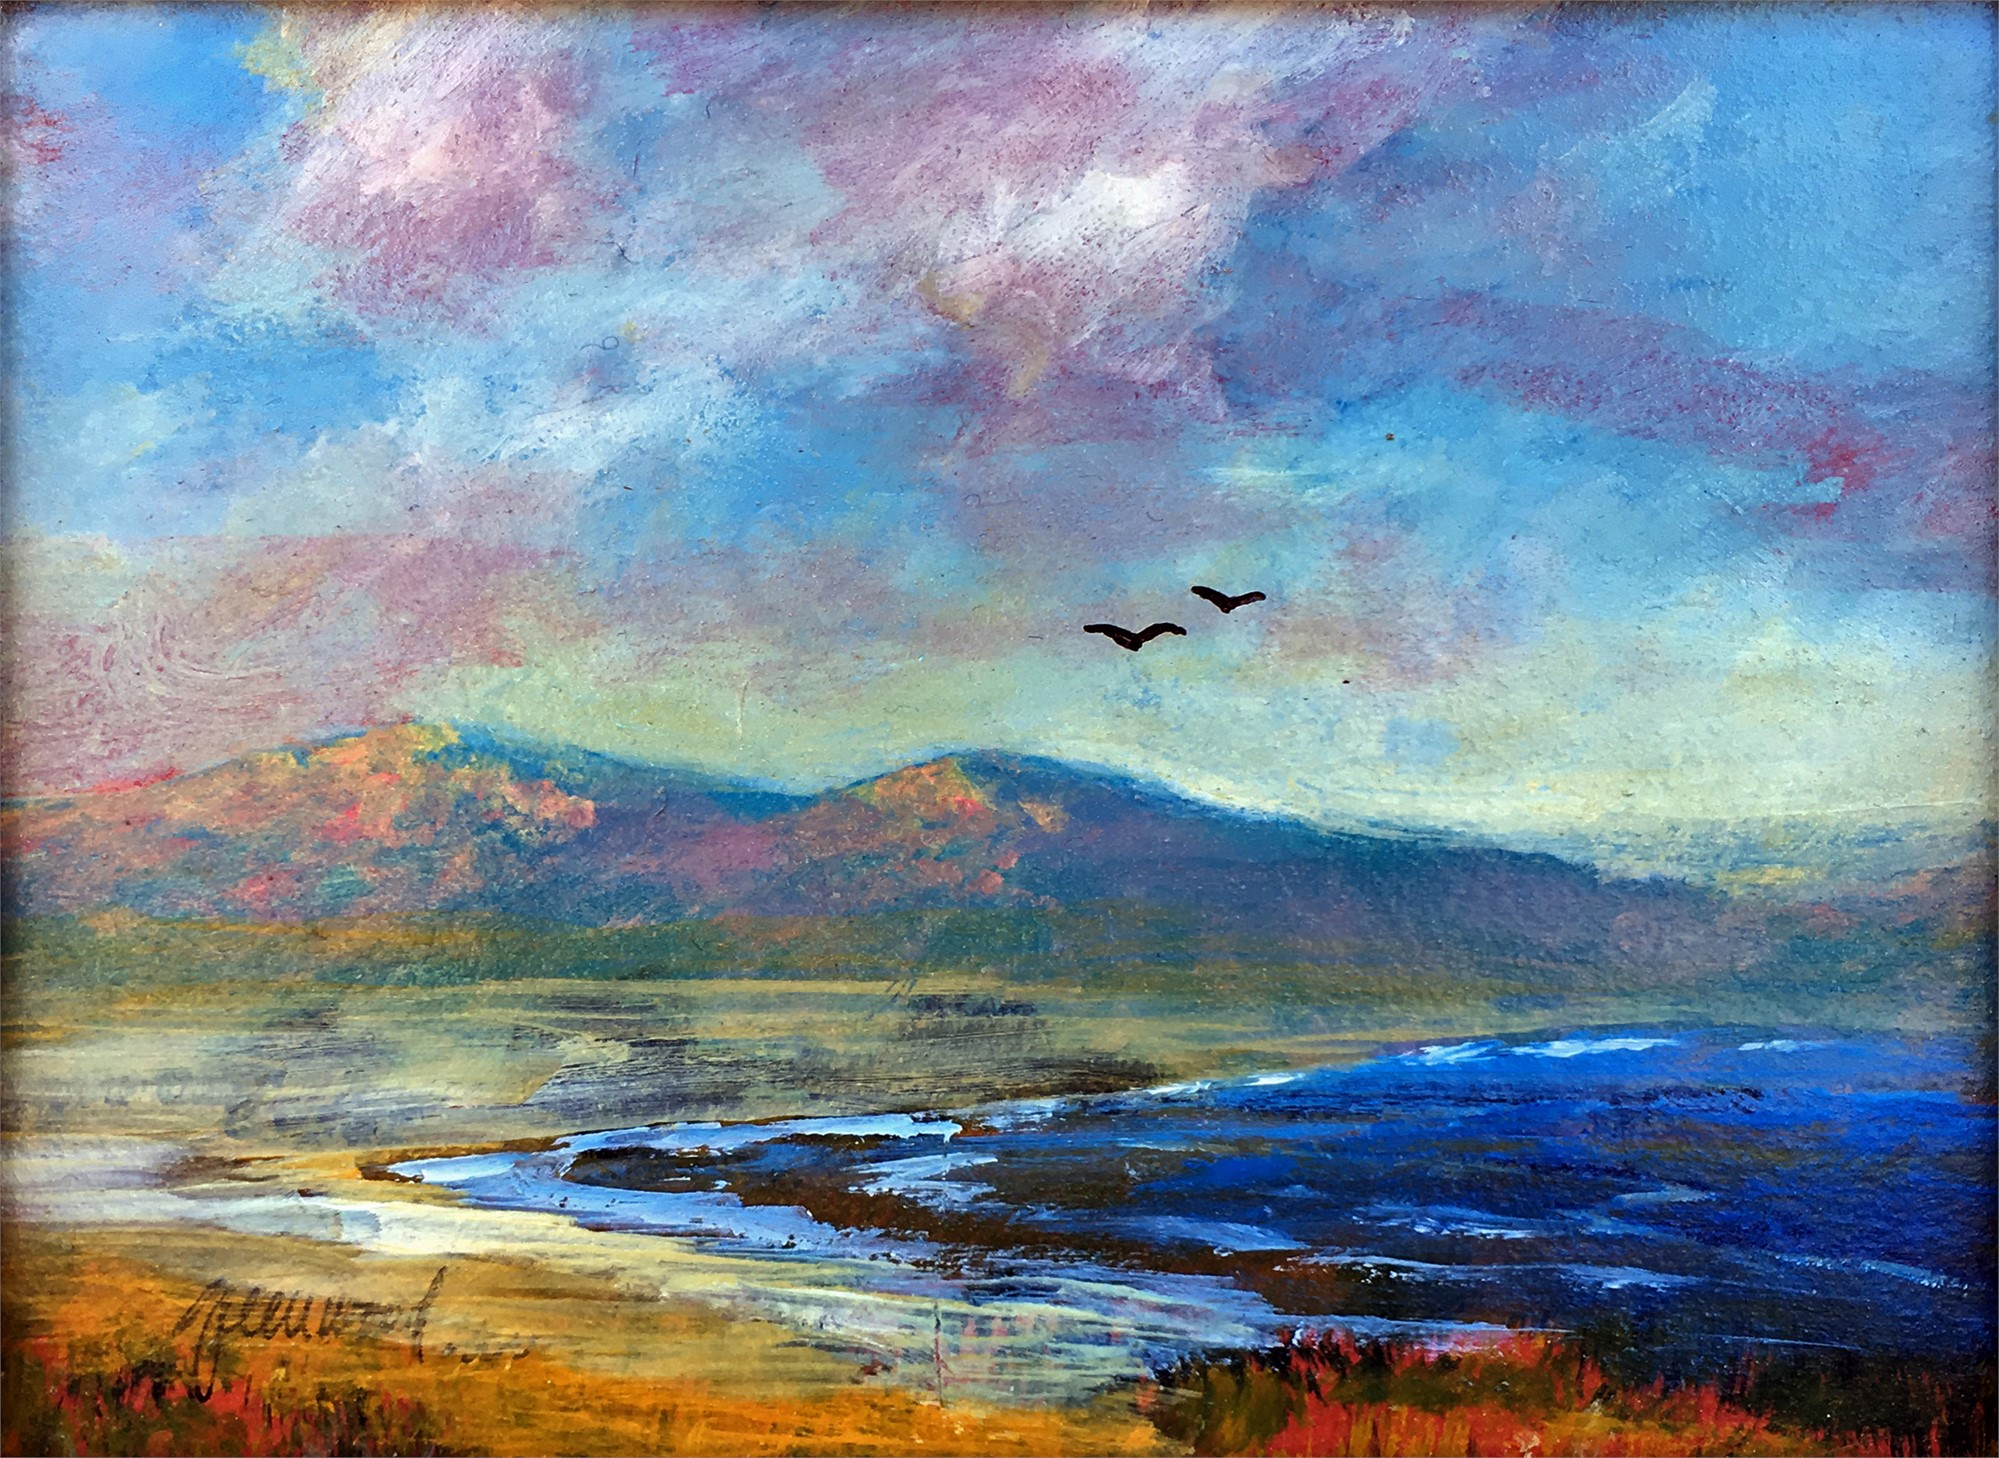 Seascape by Greenwood